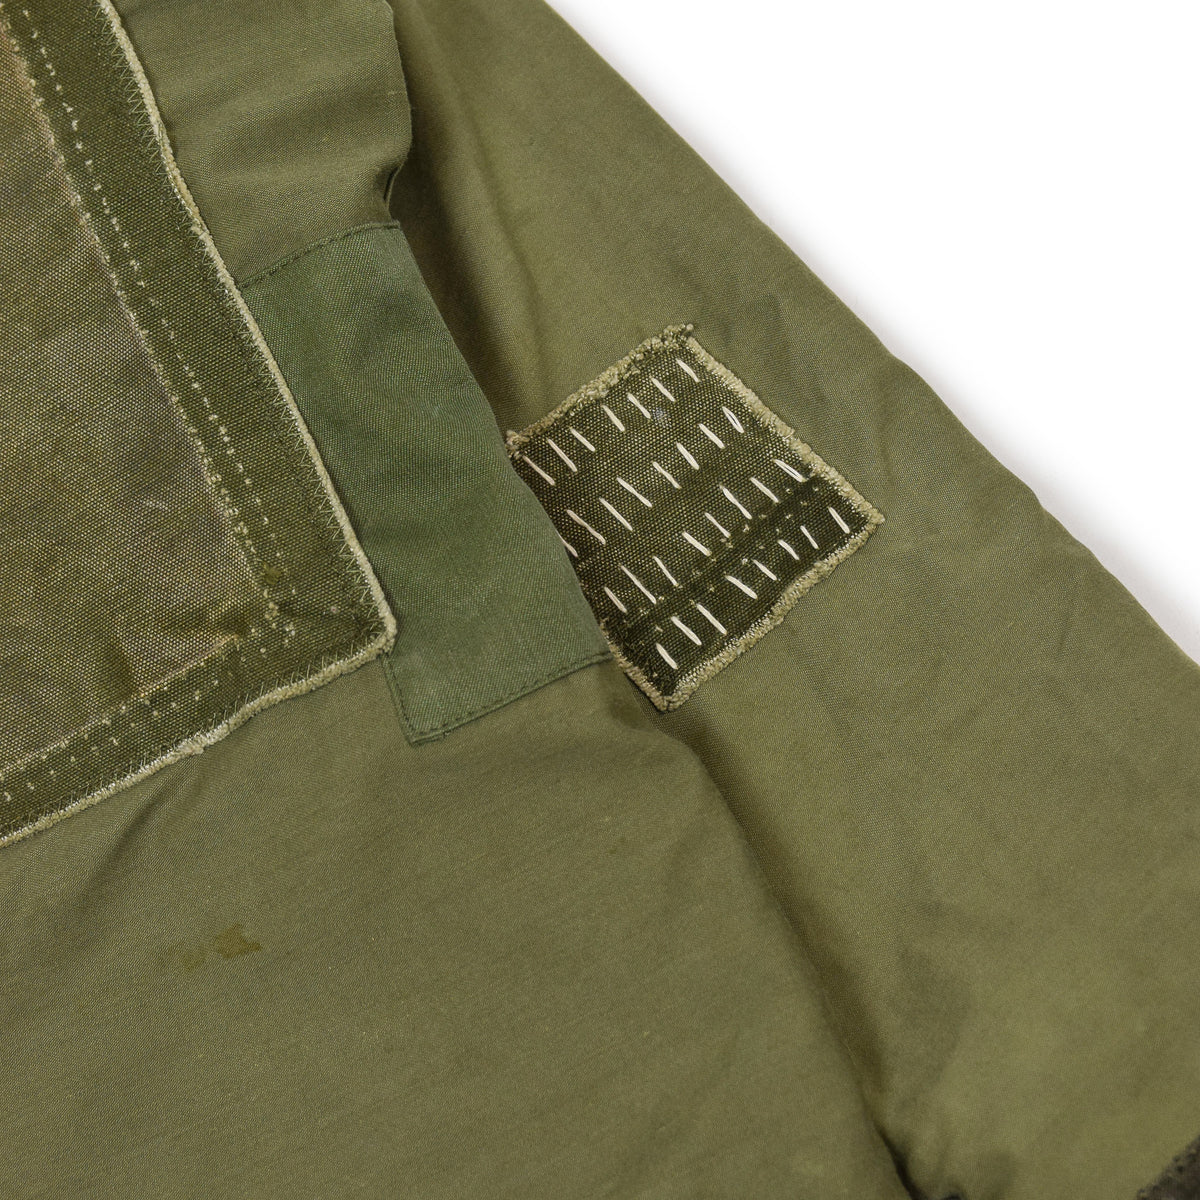 Vintage 80s US Military Darned Fine Reworked A-2 Deck Jacket M sashiko